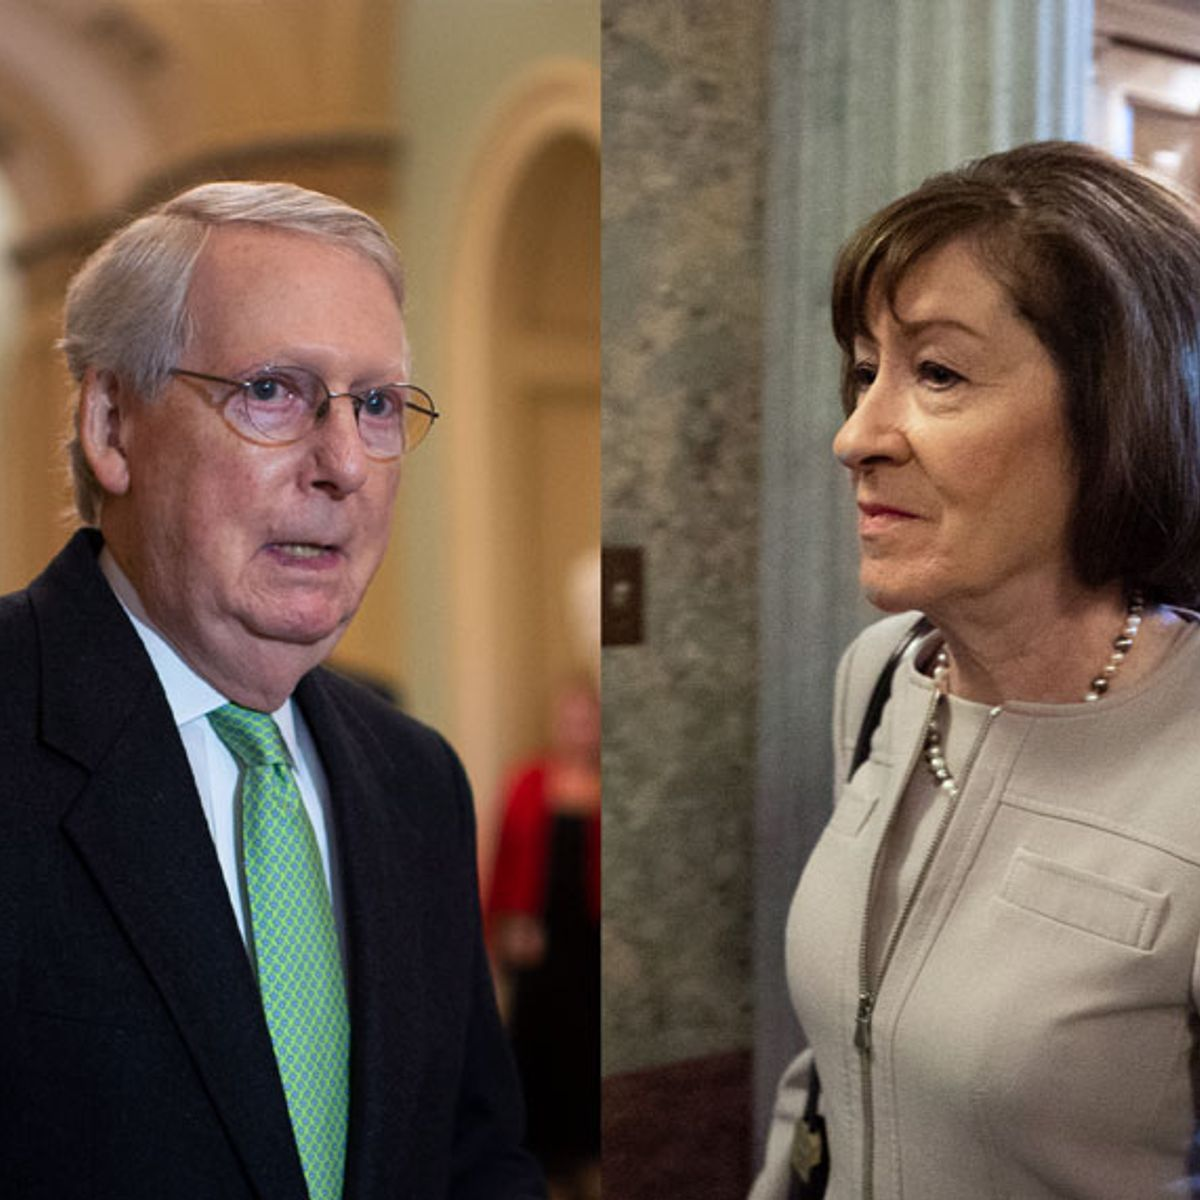 Maine Republican Susan Collins is now the most unpopular member of the US Senate